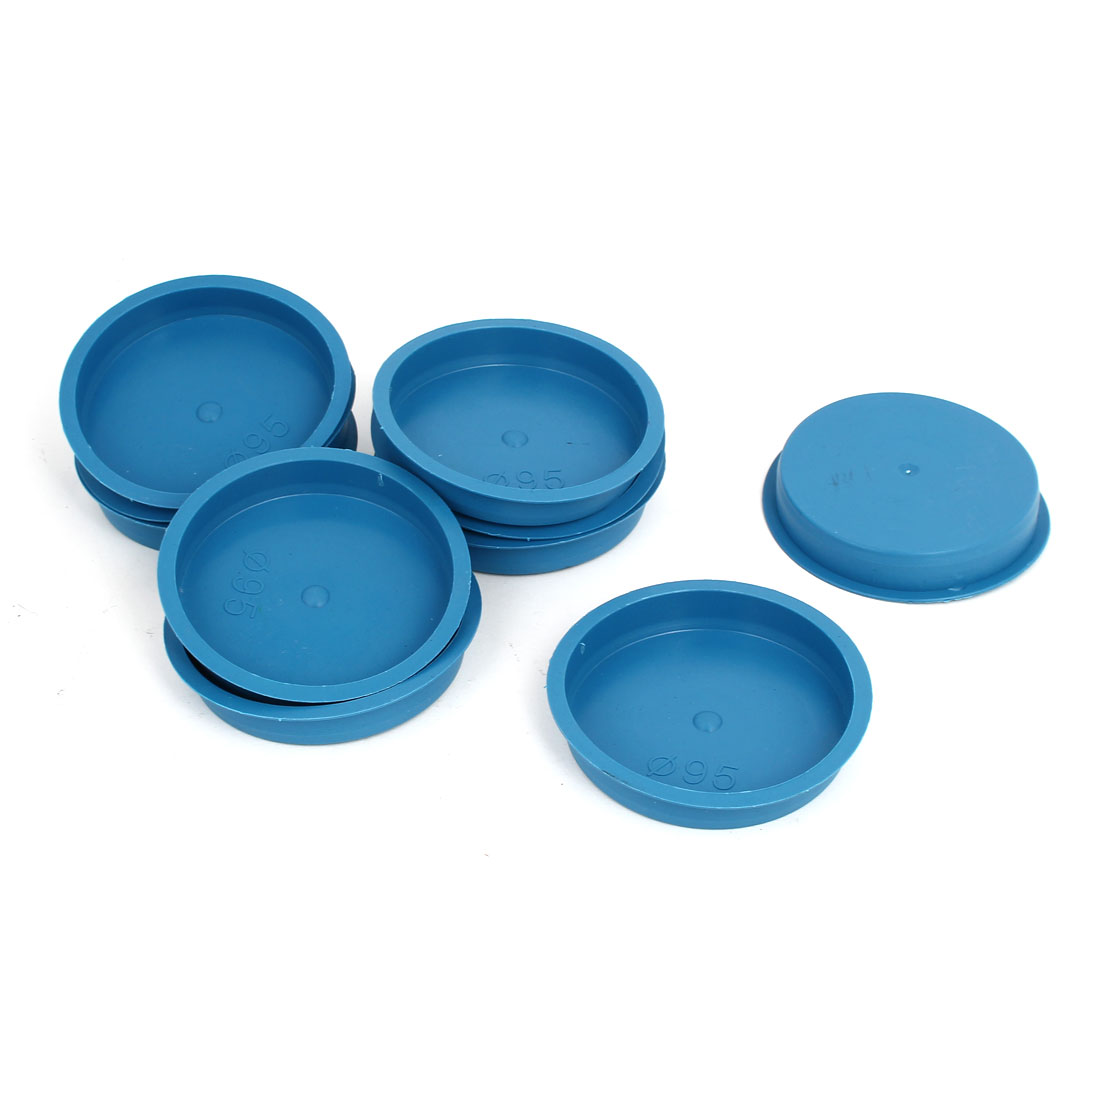 95mm Flange Mounted Tapered Hole Stoppers Waterproof Caps Blue 10pcs